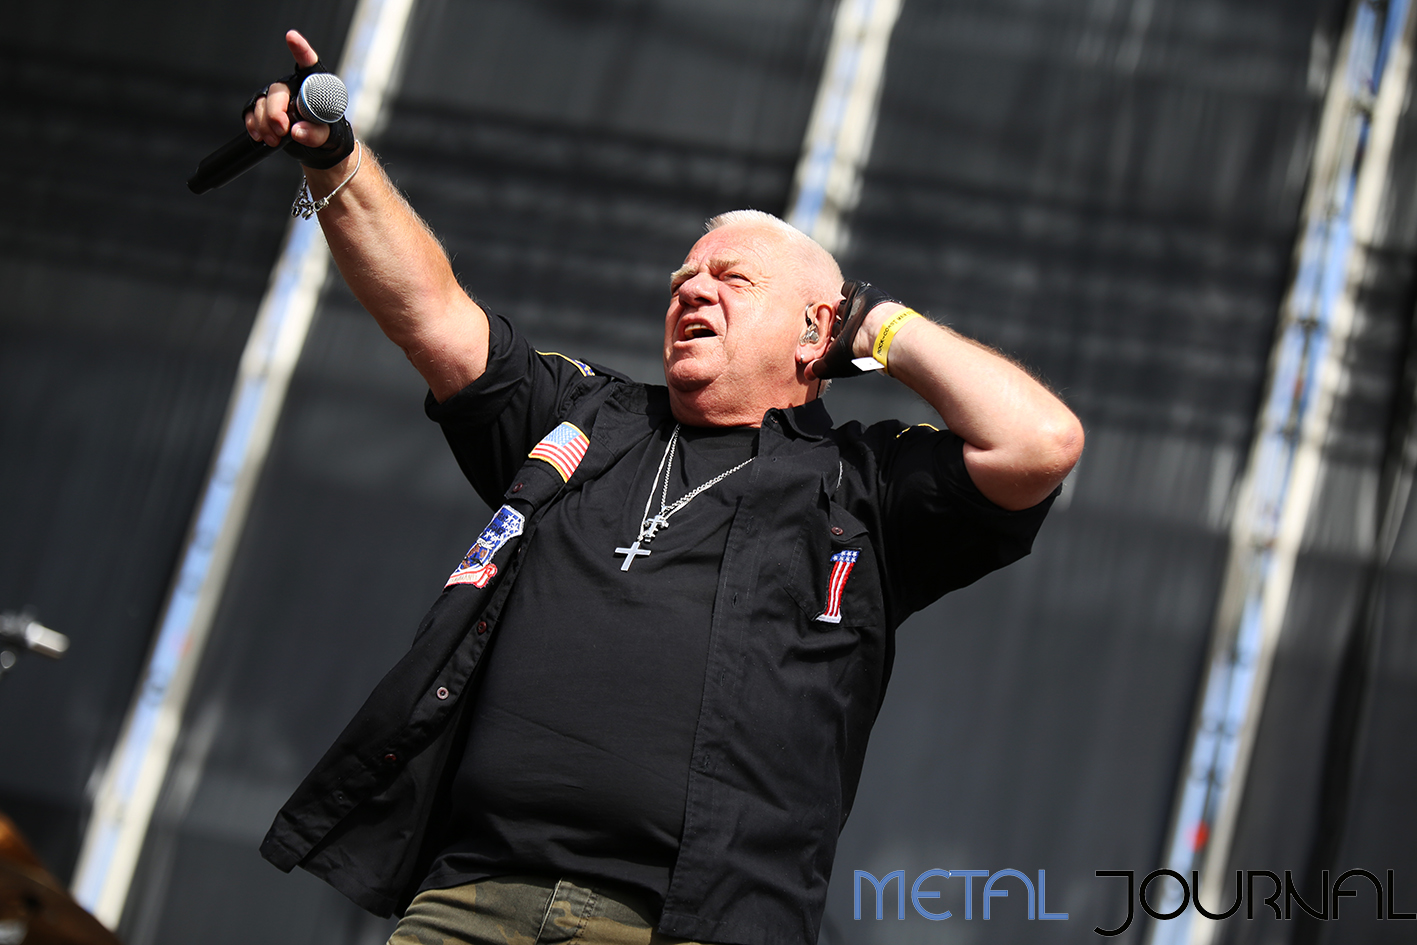 udo metal journal rock the coast 2019 pic 4